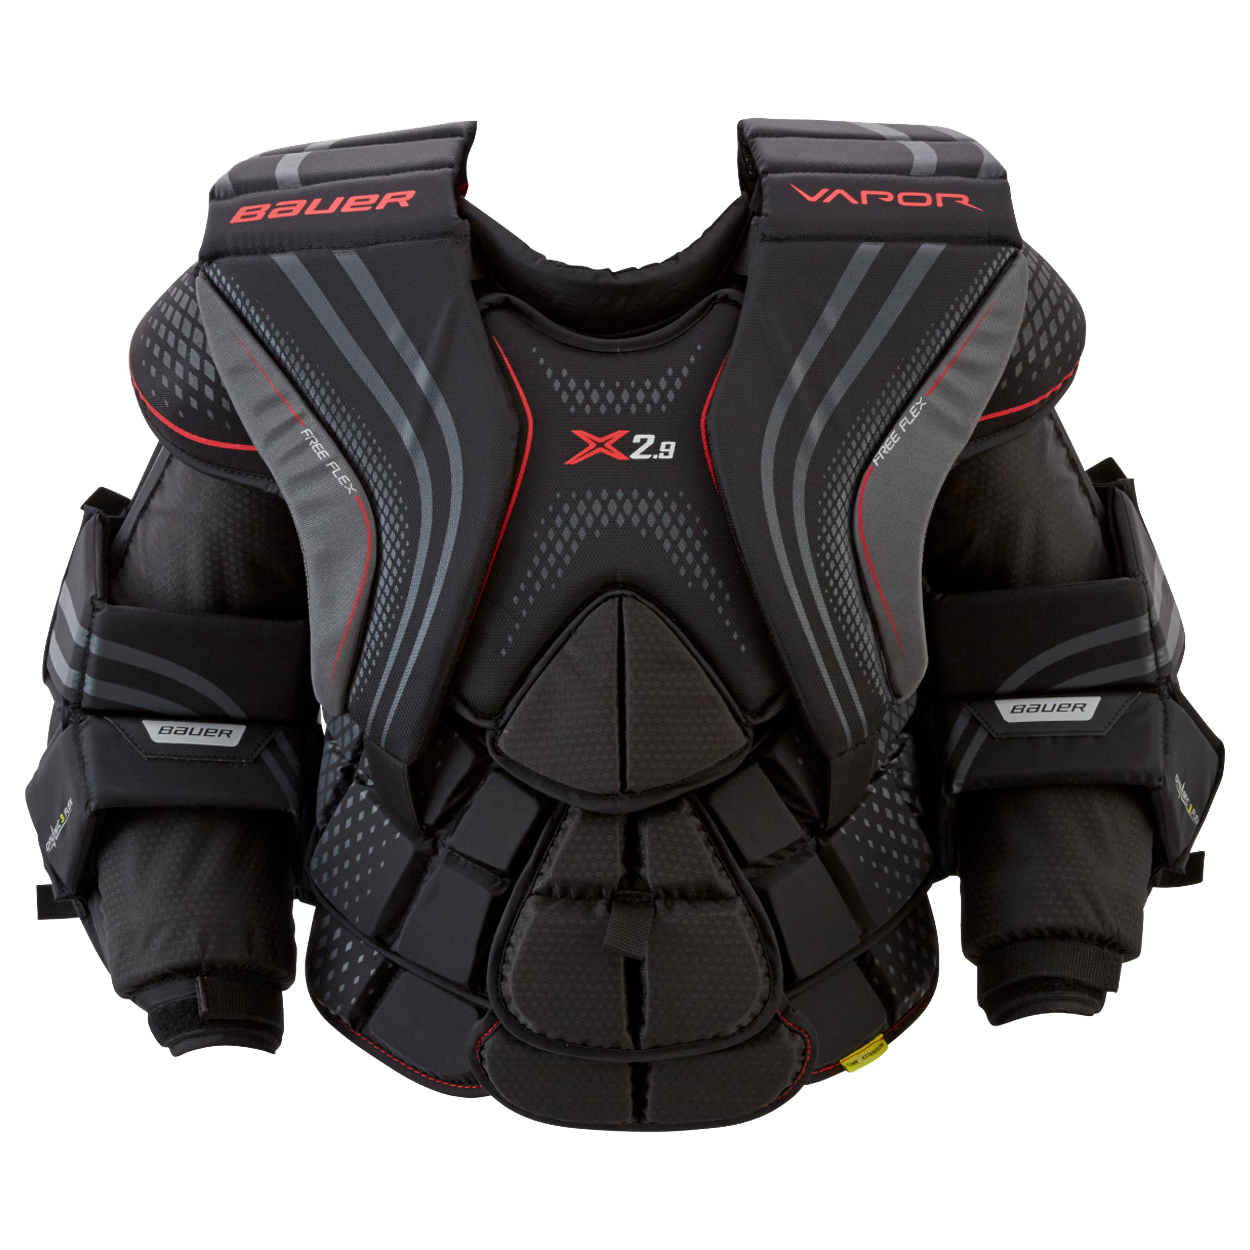 Vapor X2.9 Chest Protector Intermediate,,moyen